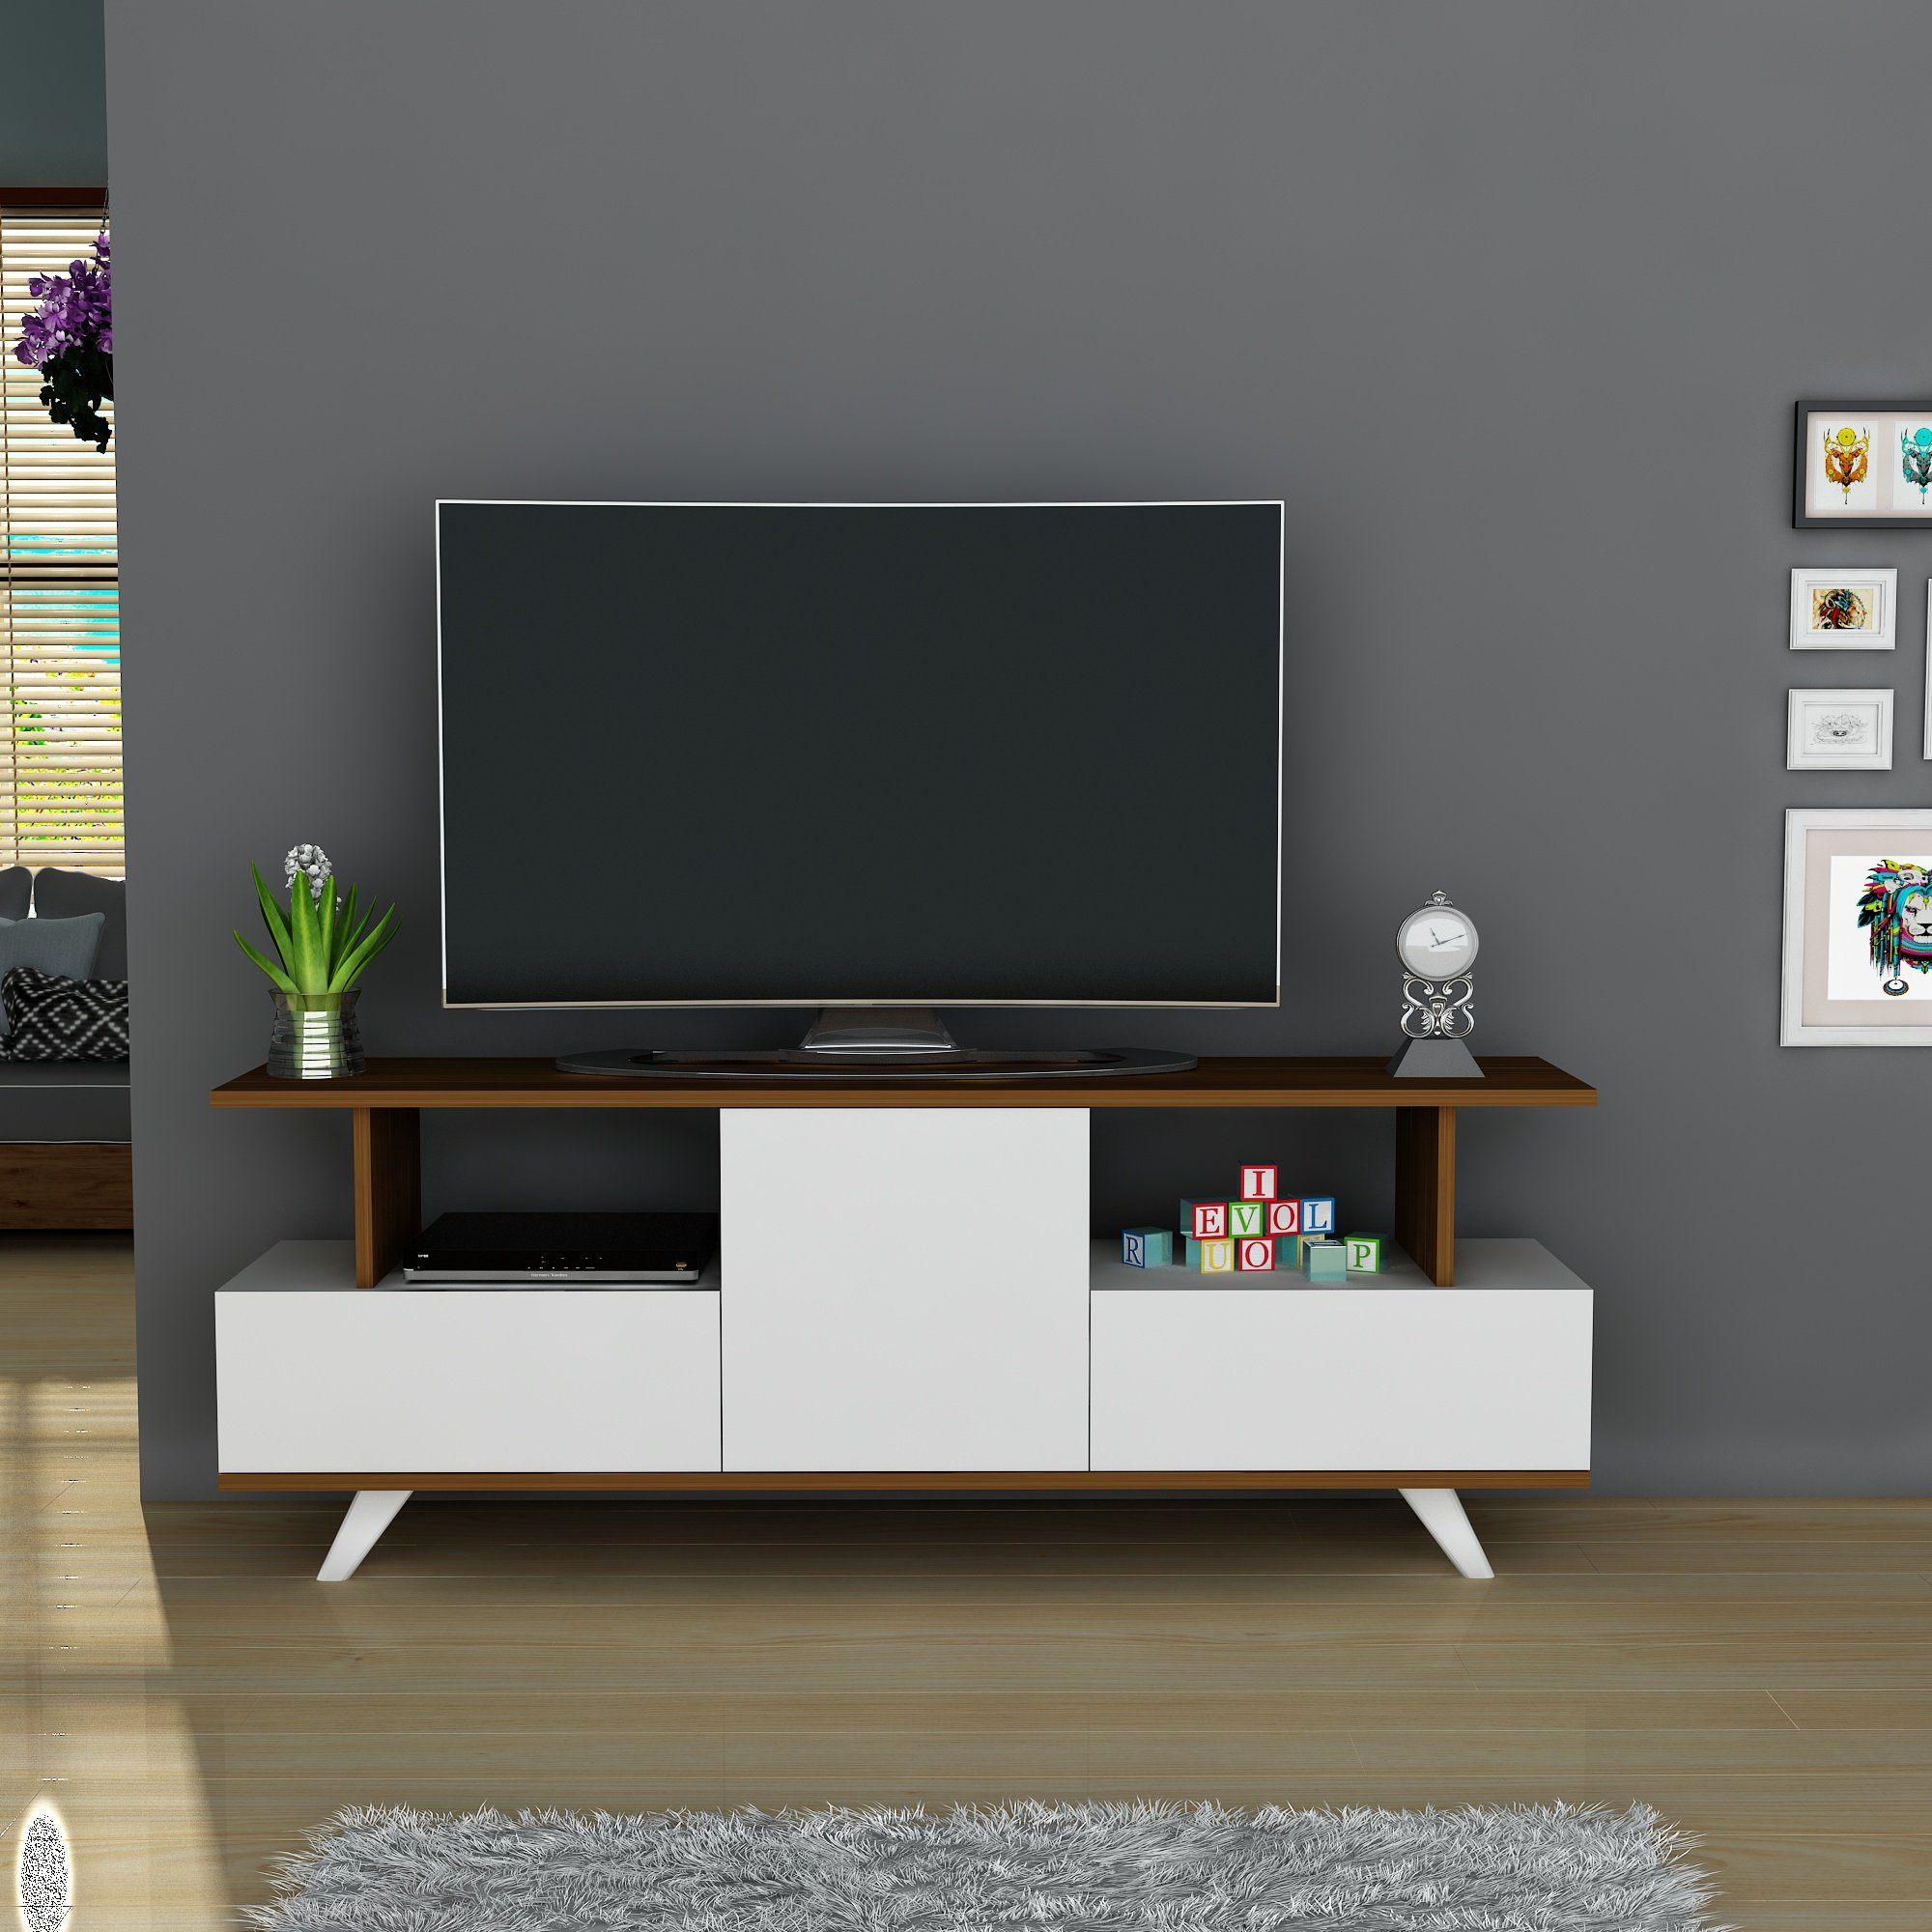 Mobilier50088